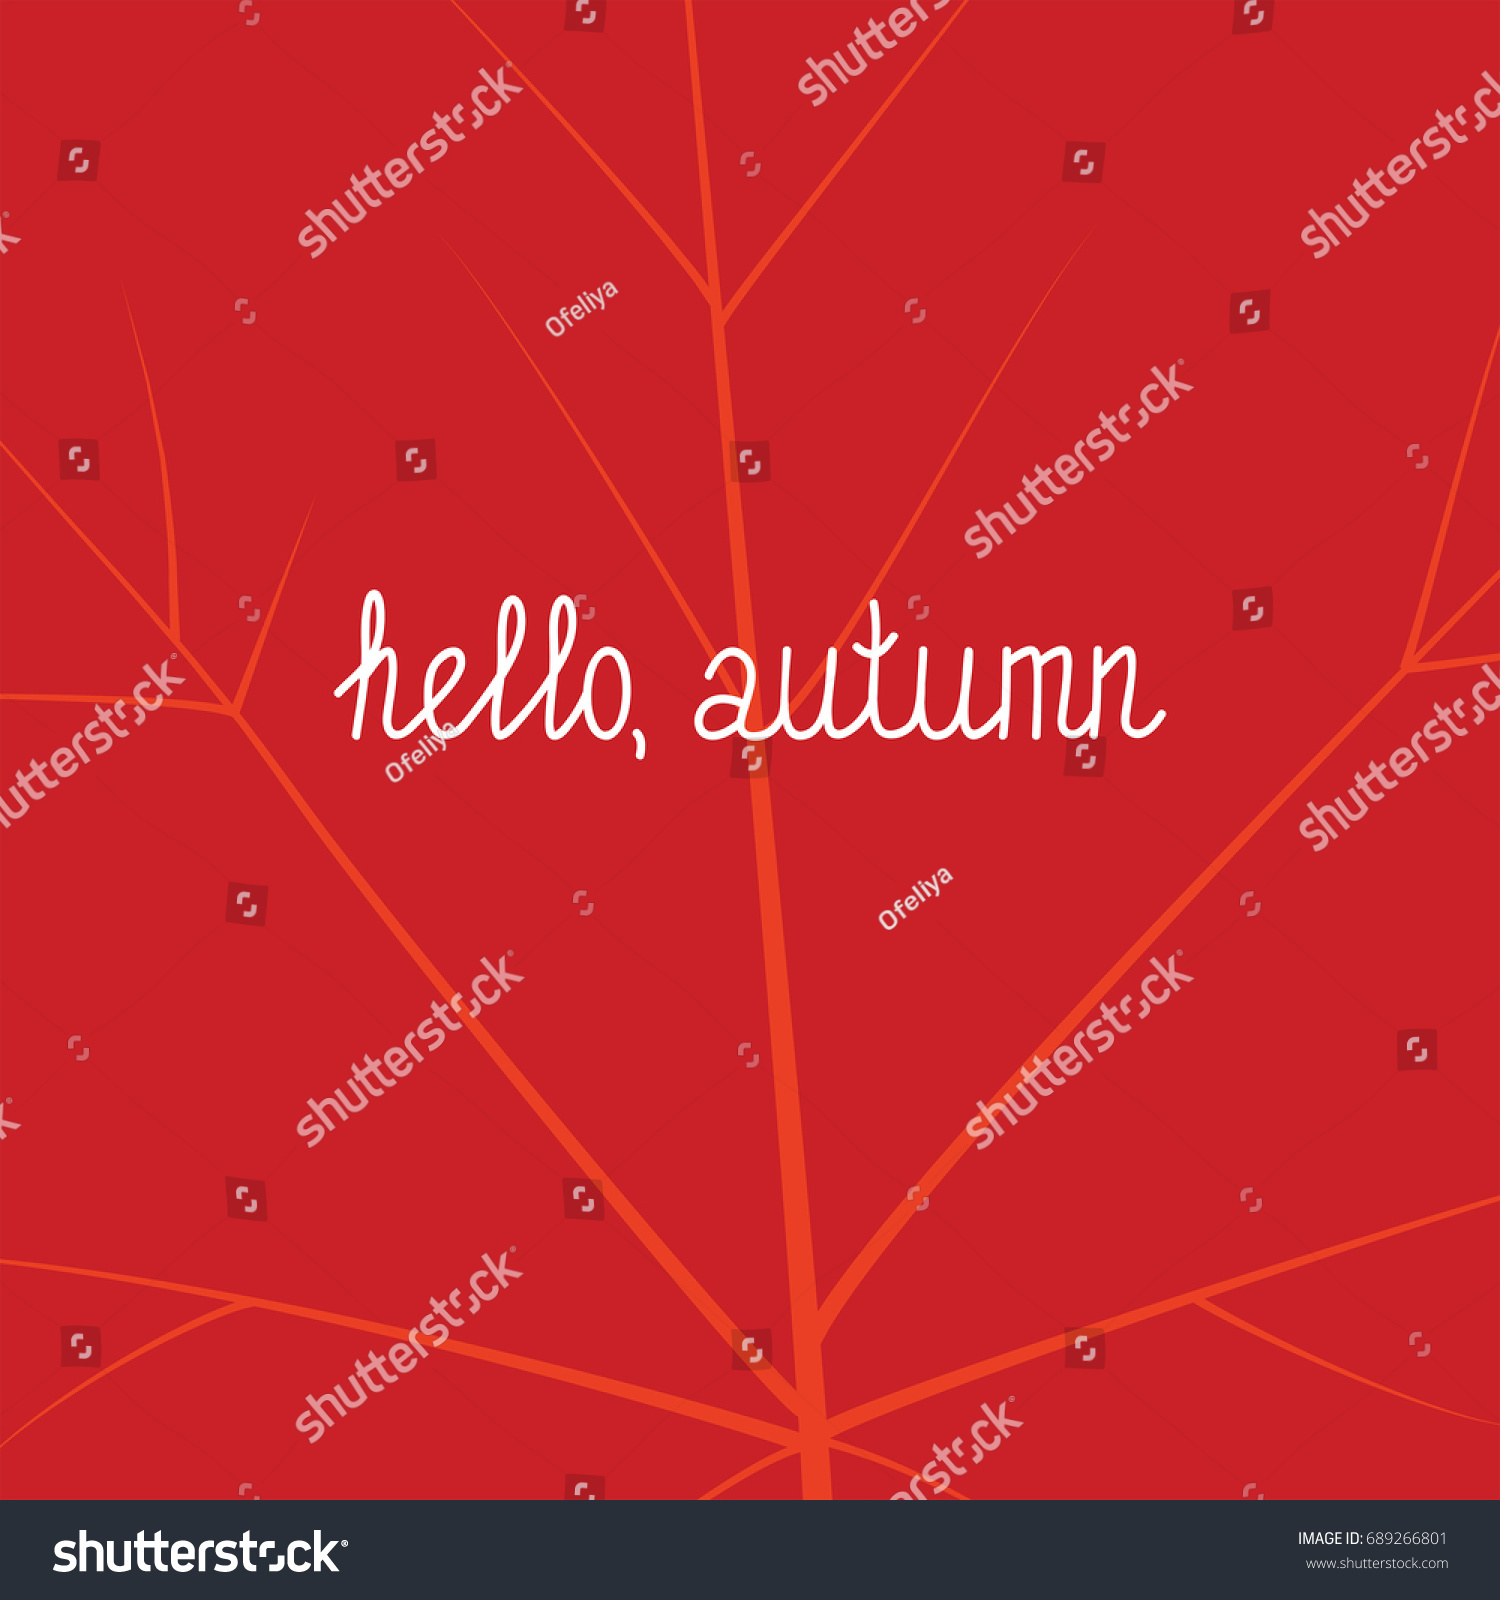 Hello Fall Giftcard With A Red Fallen Leaf With Veinlets In The Background,  With Hello